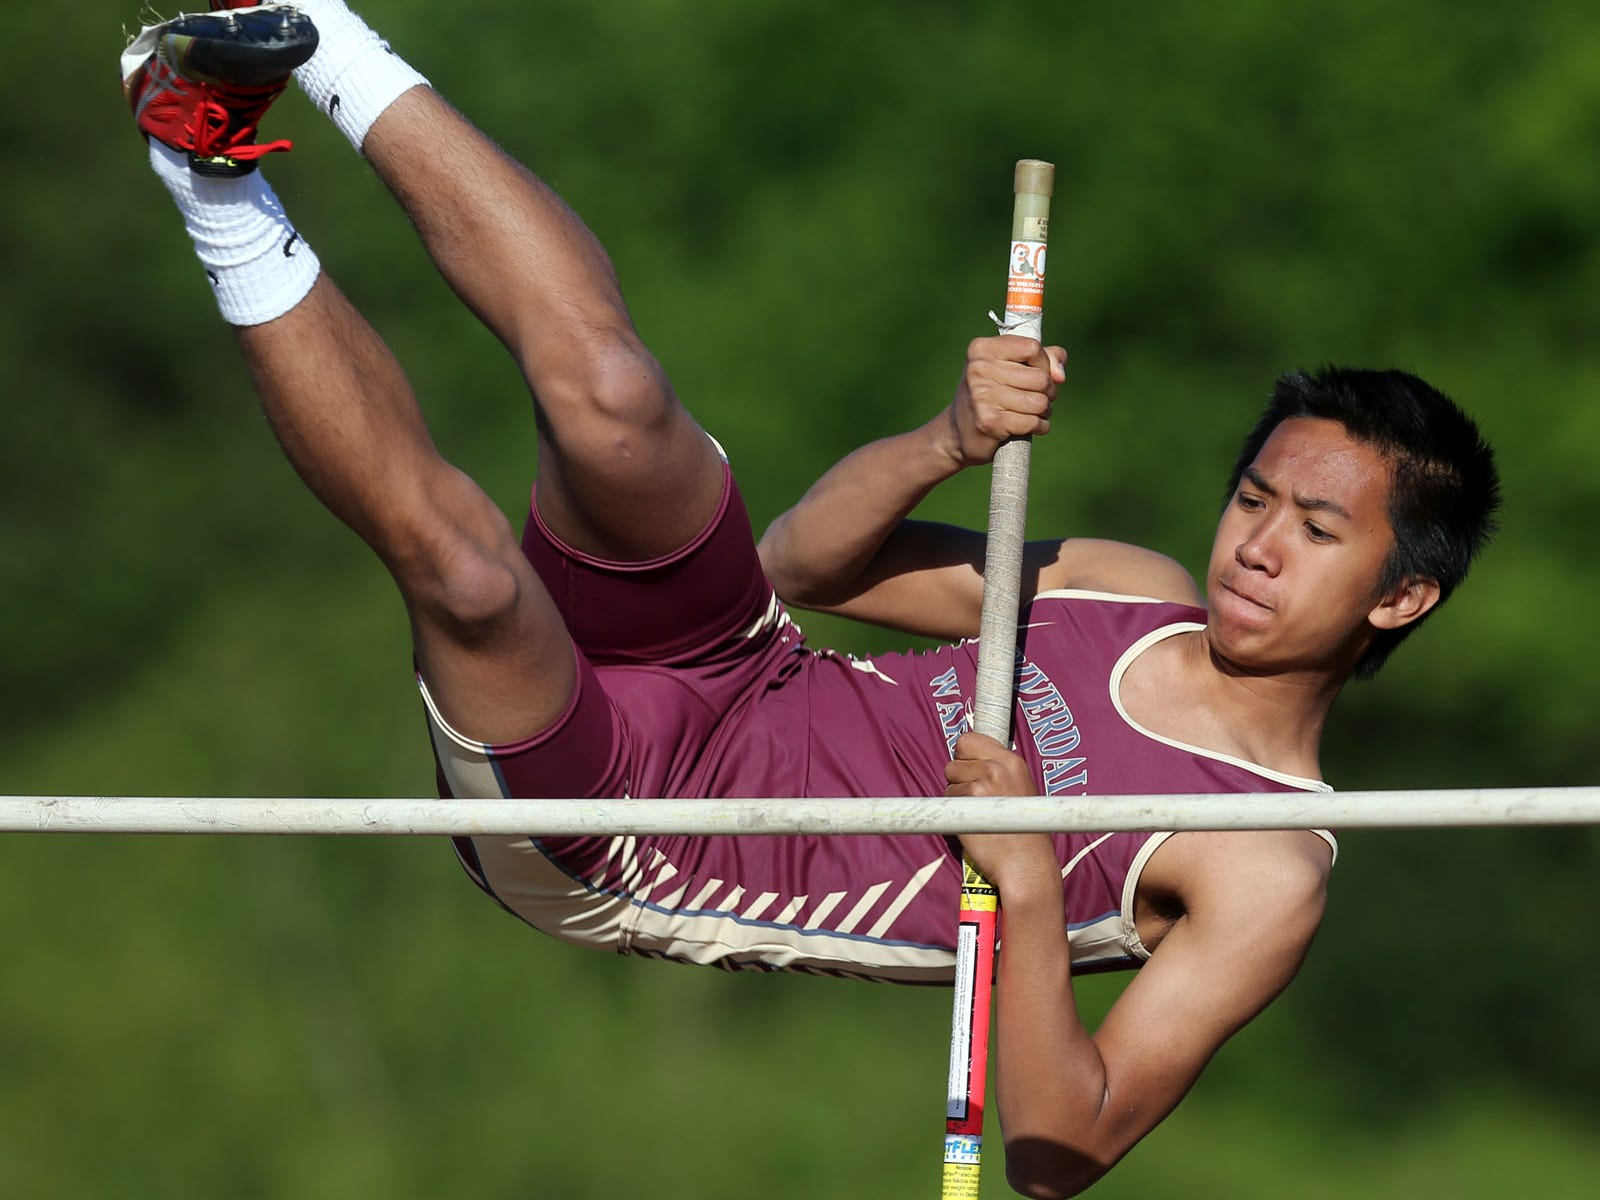 Riverdale's Bryan Abriol competes in the pole vault Monday. Abriol finished fourth, clearing 8 feet.